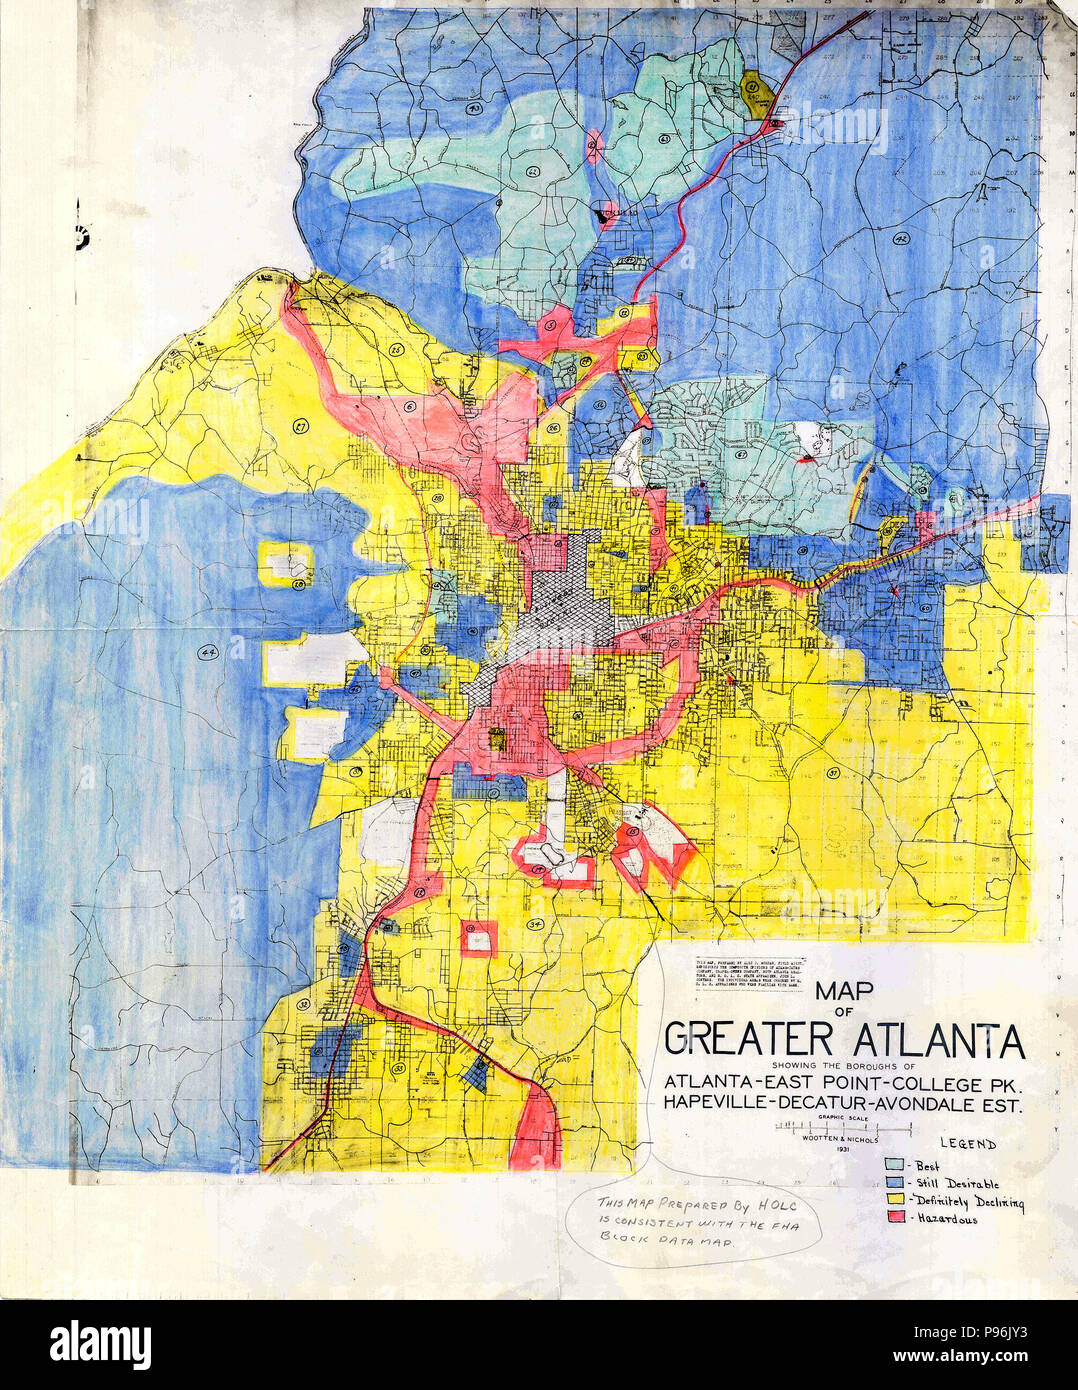 Redline Map for Greater Atlanta, Georgia 1930s Stock Photo ...